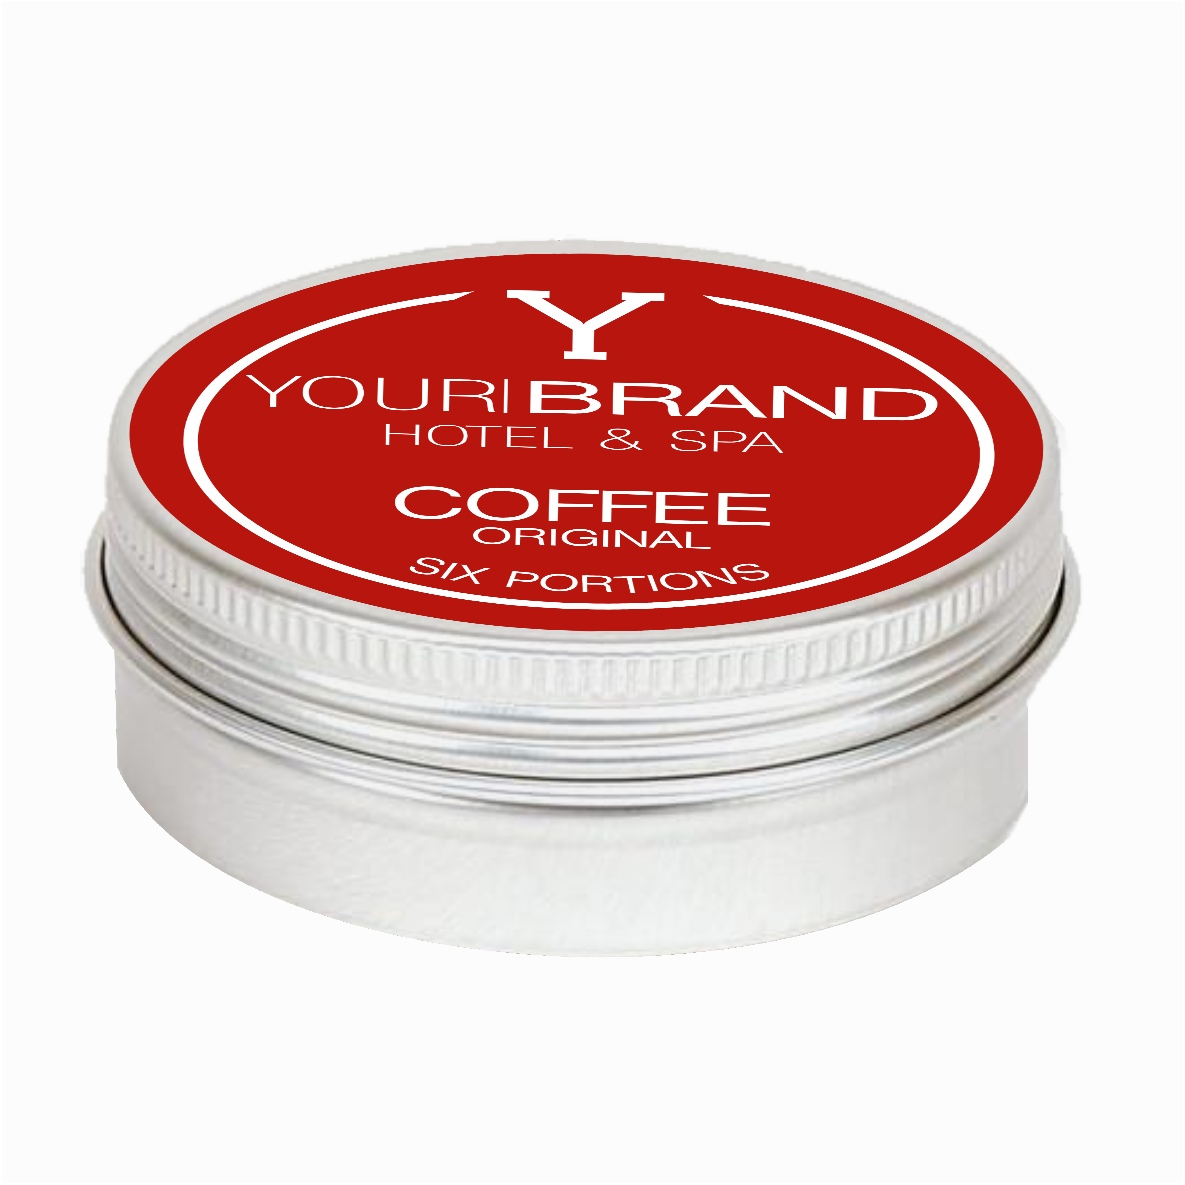 bespoke hotel coffee, customised hotel coffee, premium hospitality coffee, coffee tin, hotel coffee